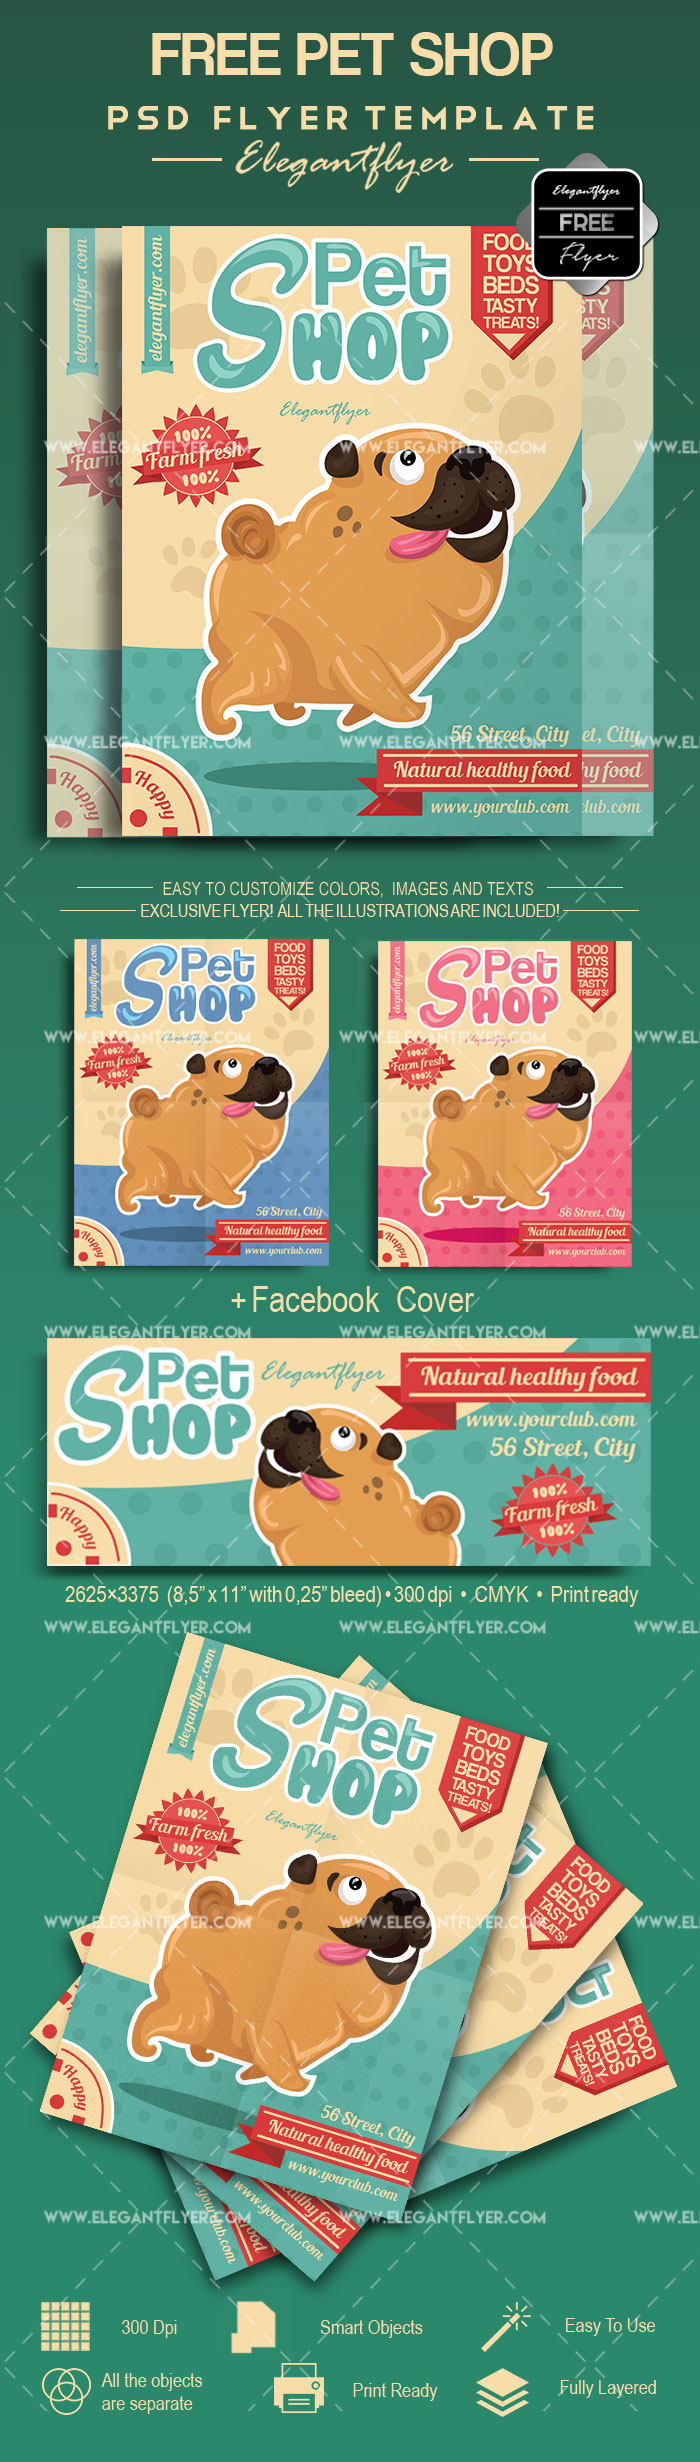 Pet Shop Free Flyer Template By Elegantflyer